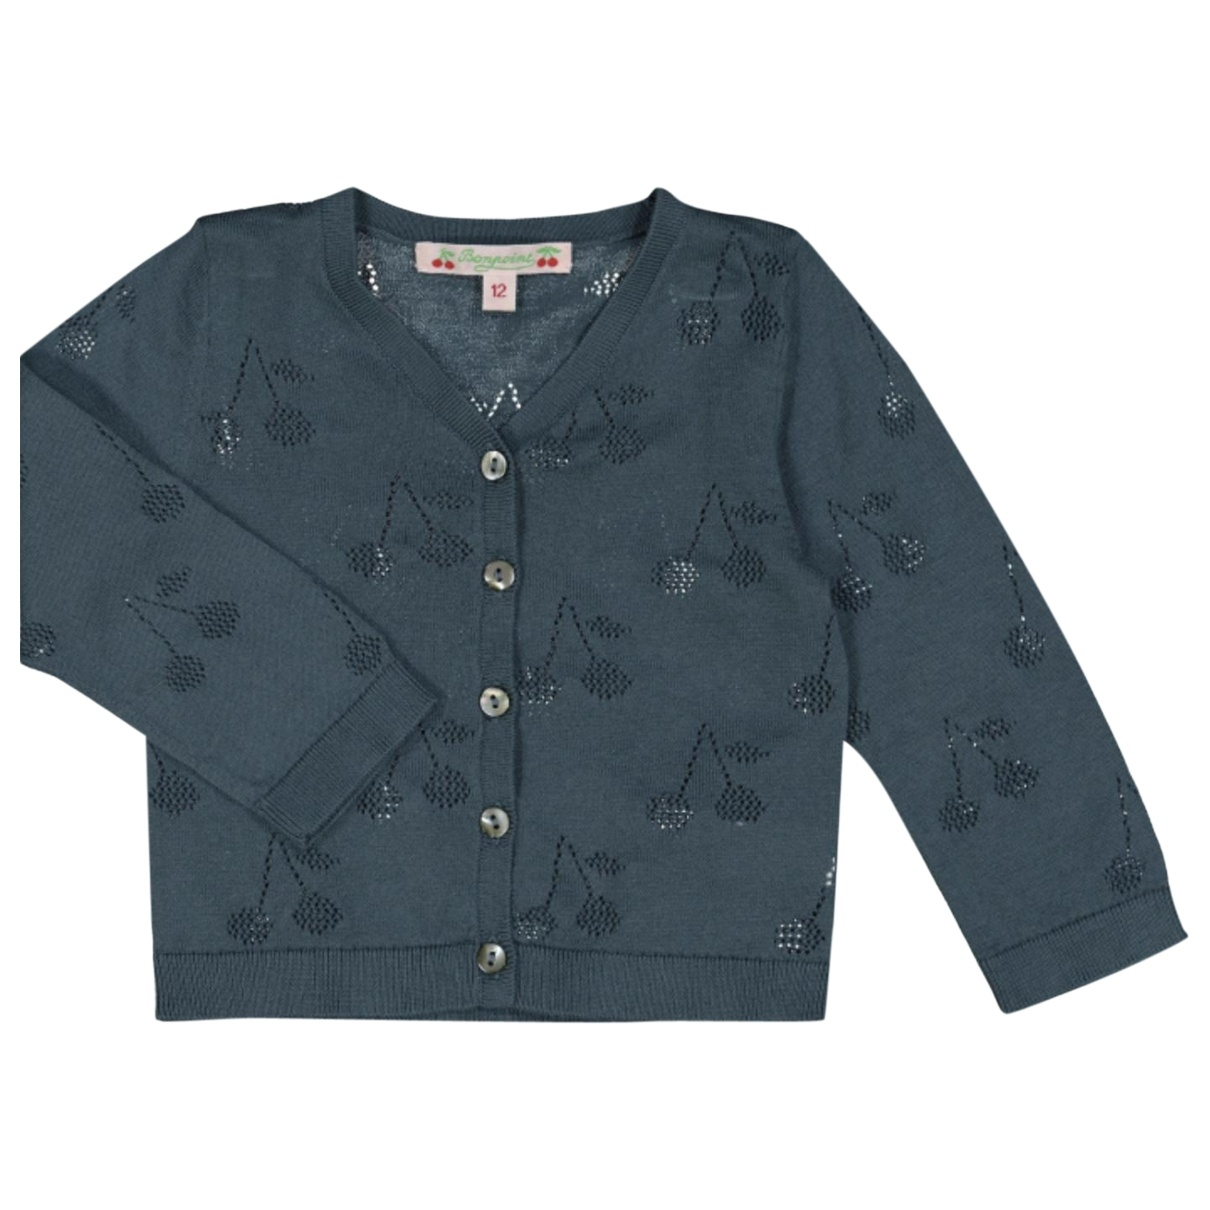 Bonpoint \N Blue Cotton Knitwear for Kids 3 months - up to 60cm FR